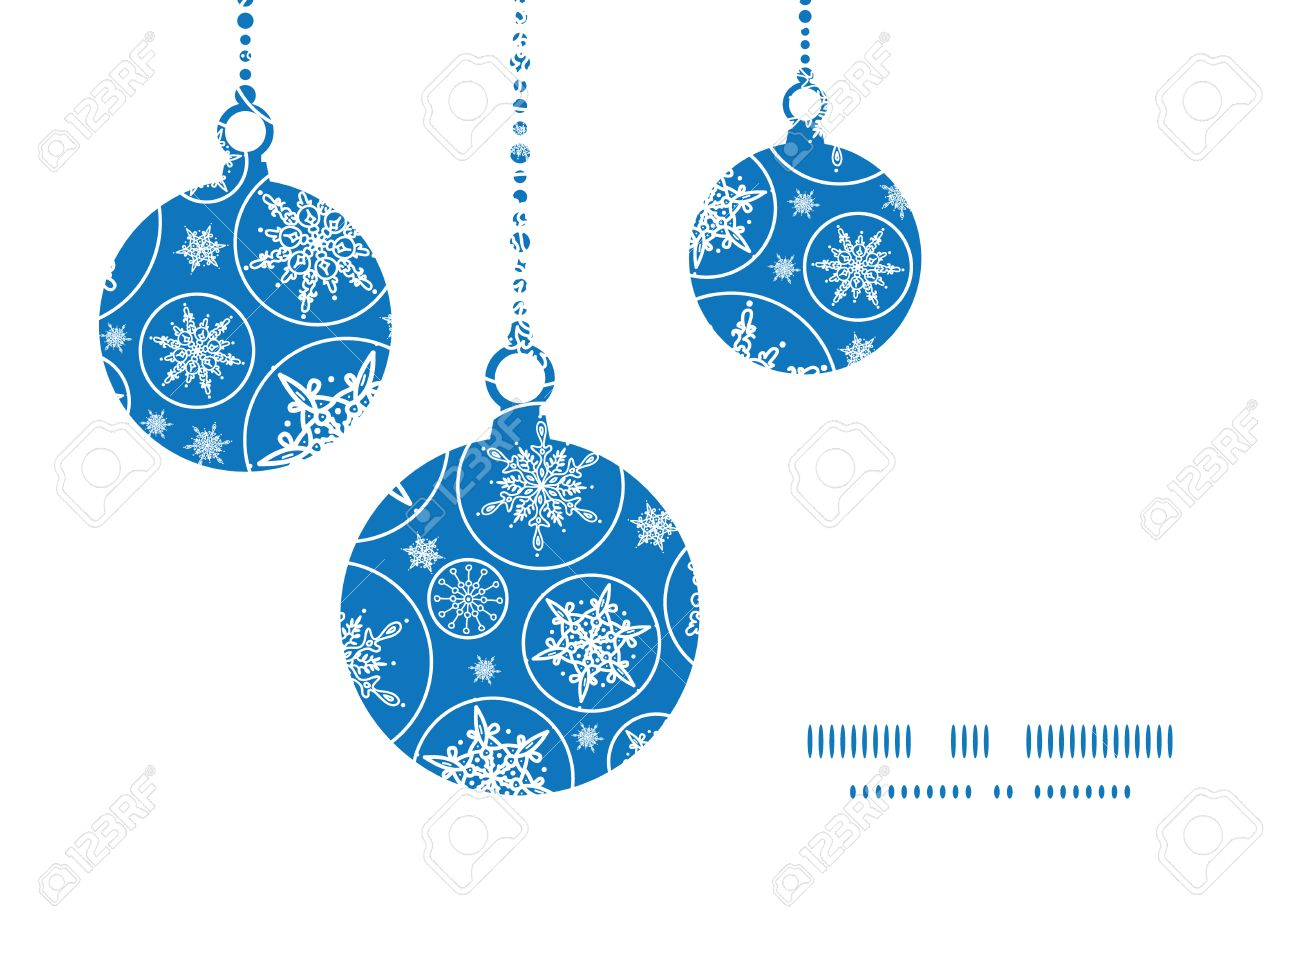 Falling Snowflakes Christmas Ornaments Silhouettes Pattern Frame